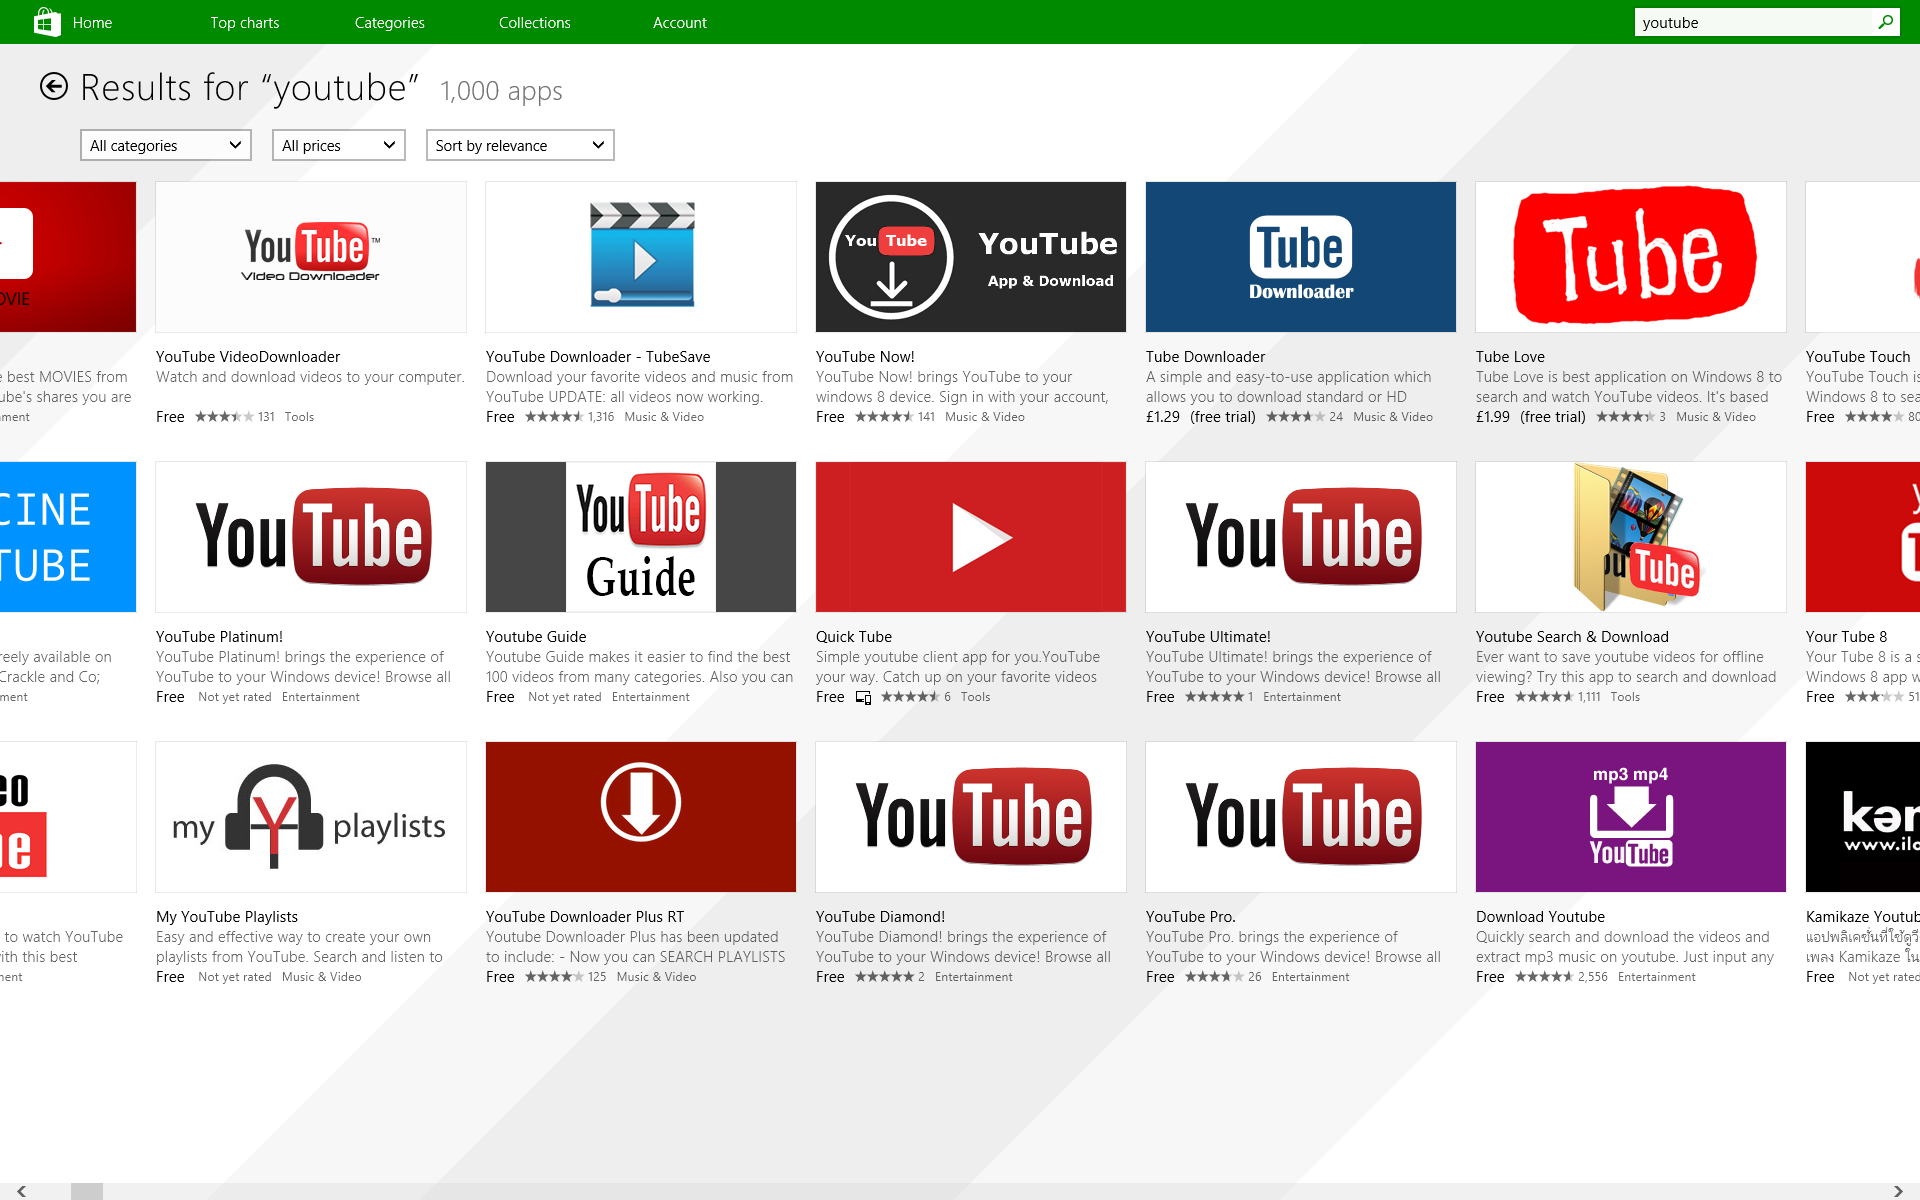 They may say YouTube and they may use the YouTube logo, but none of these apps has anything to do with Google.